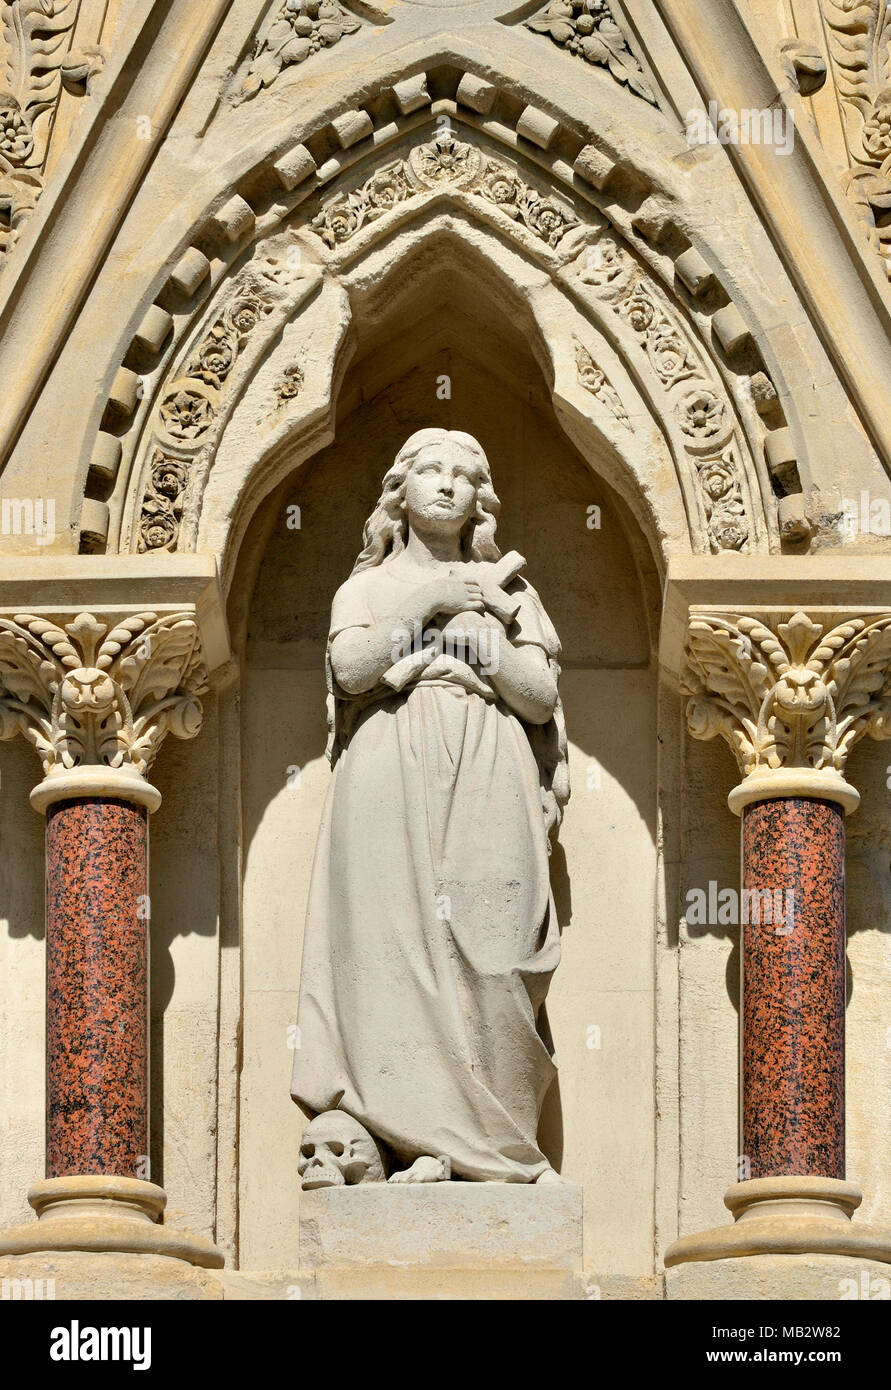 London, England, UK. St Lawrence and Mary Magdalene Drinking Fountain at the eastern end of Carter Lane Gardens, across the road from St Paul's..... - Stock Image